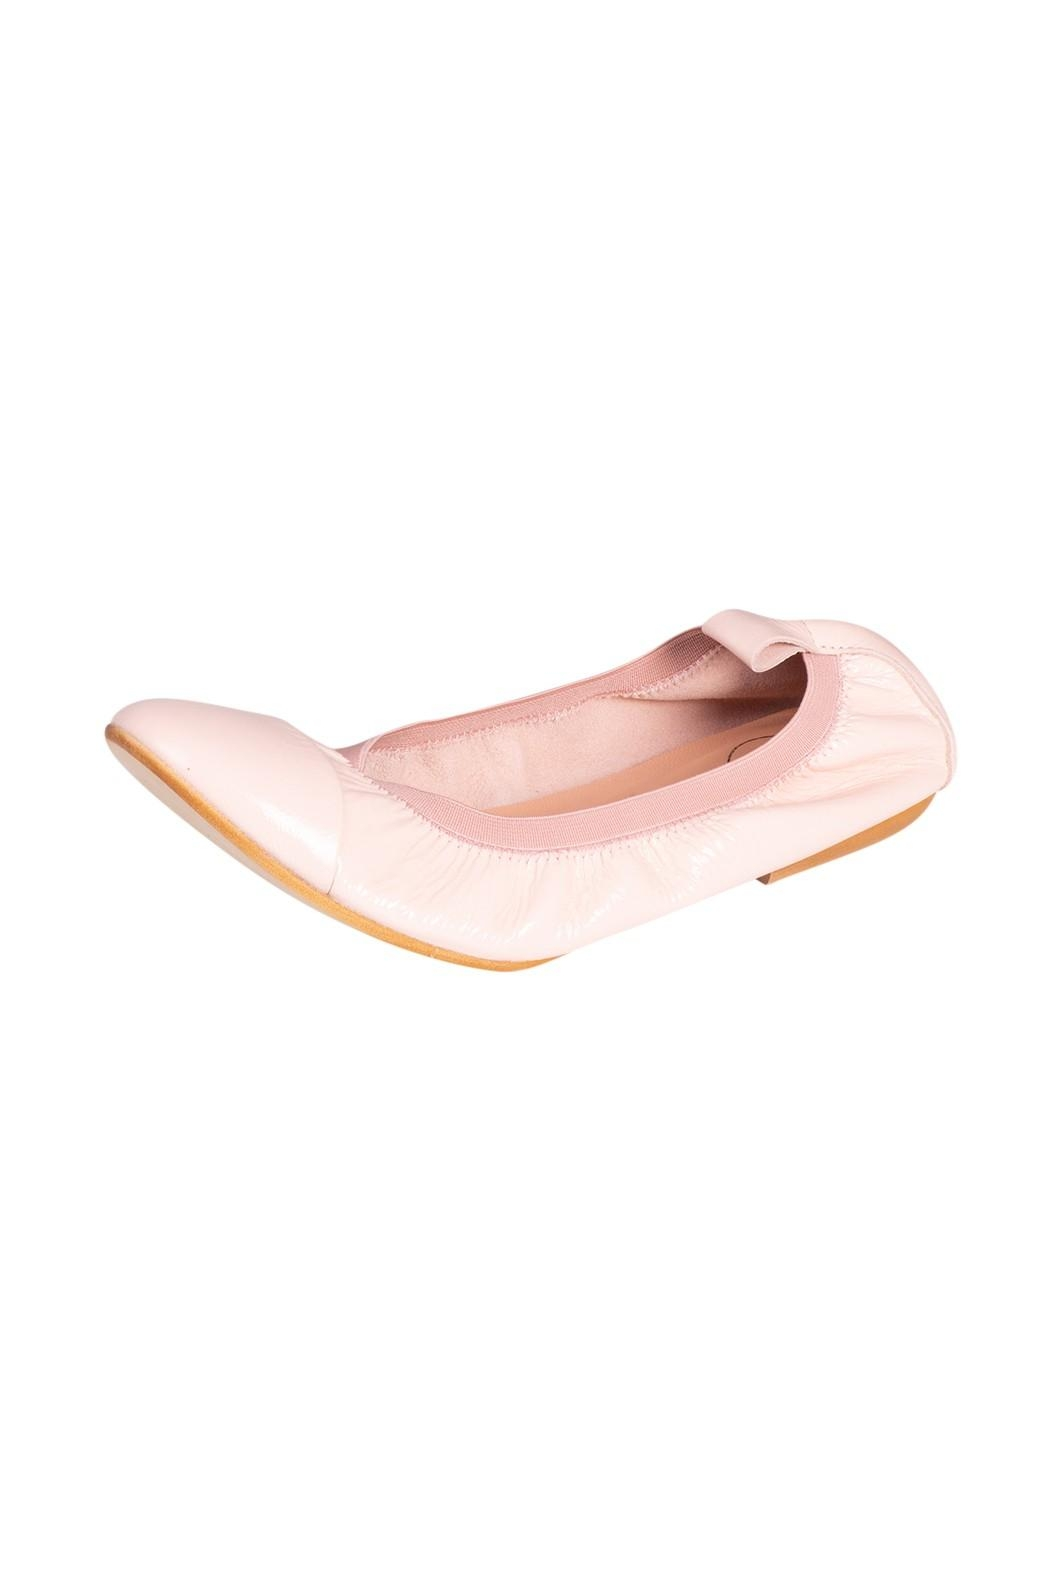 Manu Mari Leather Ballet Flats - Front Full Image